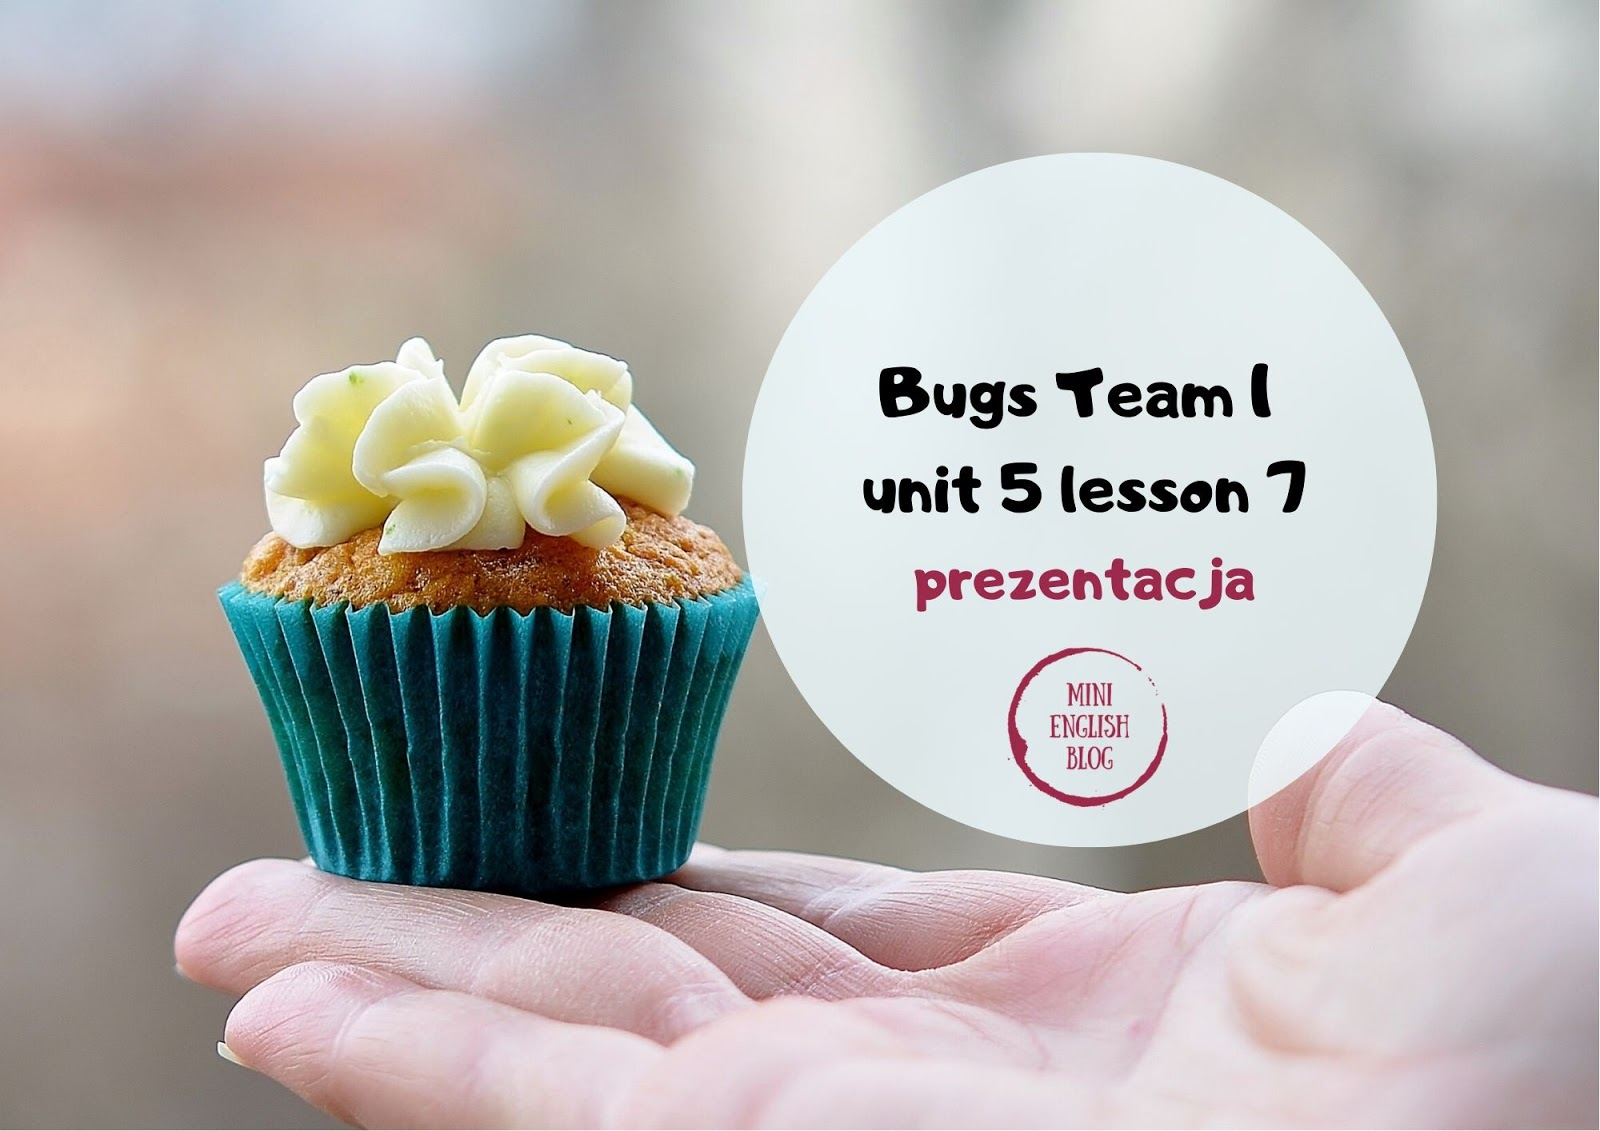 Cakes and sweets. Prezentacja do Bugs Team 1, unit 5, lesson 7